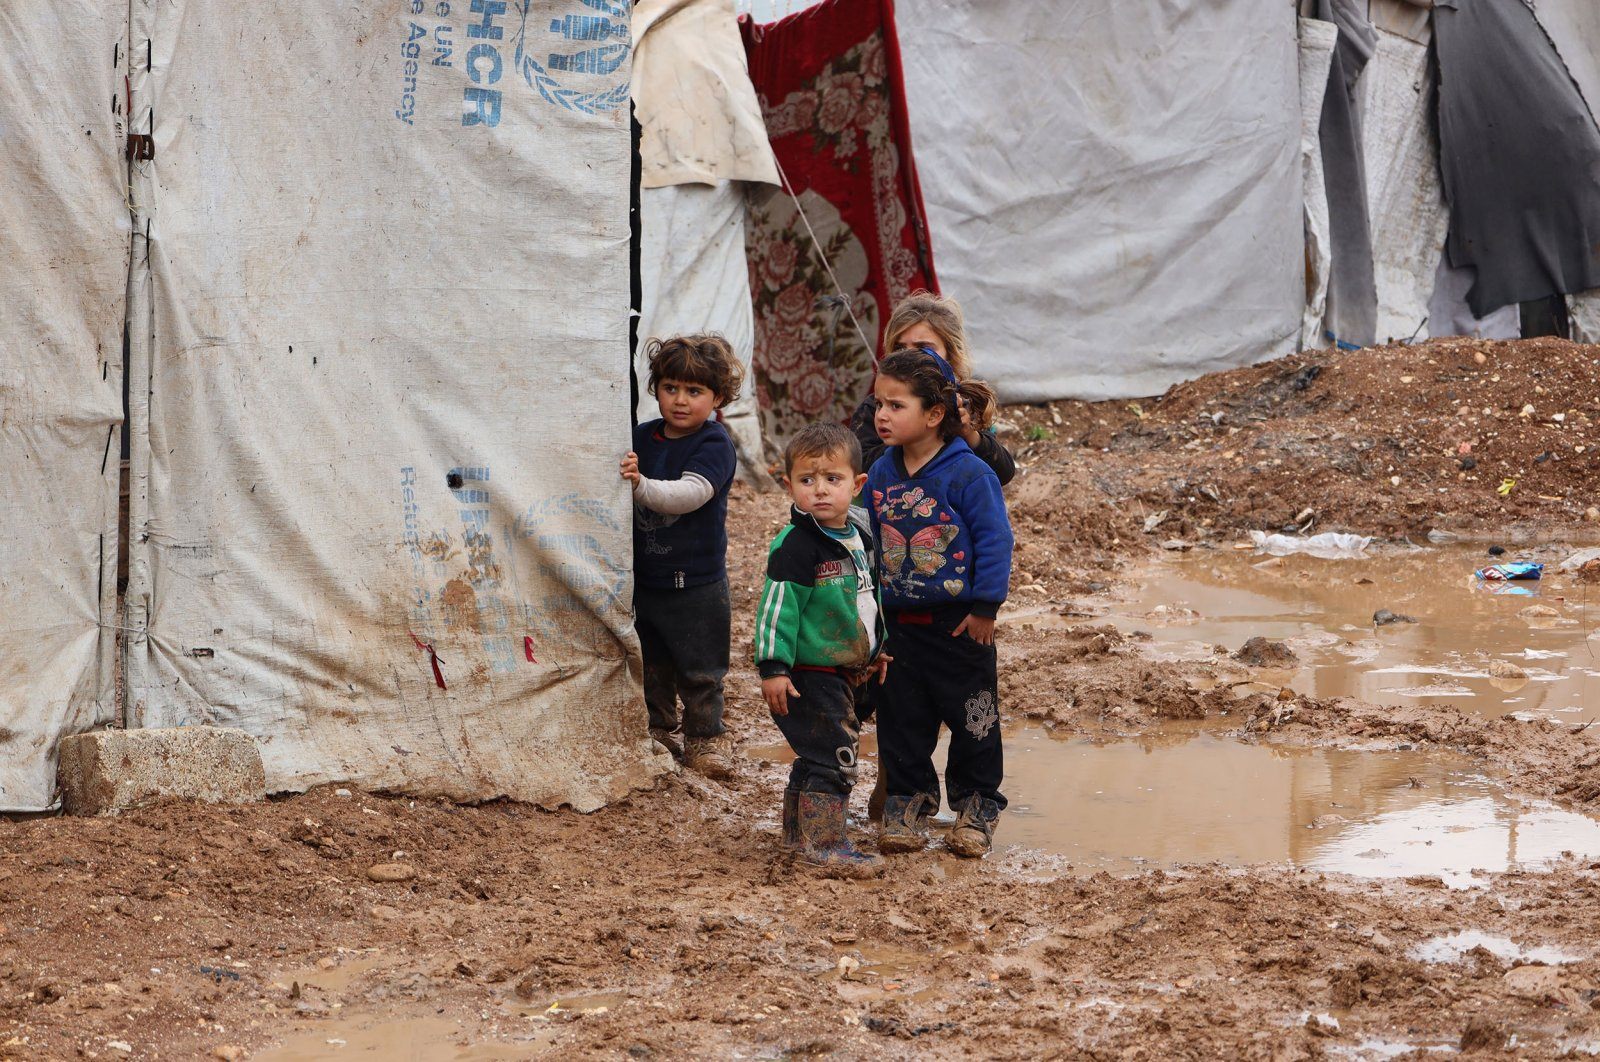 Syrian children stand outside tents in a camp for the displaced, near the Syrian-Turkish border, Syria, Jan. 29, 2021. (Getty Images)